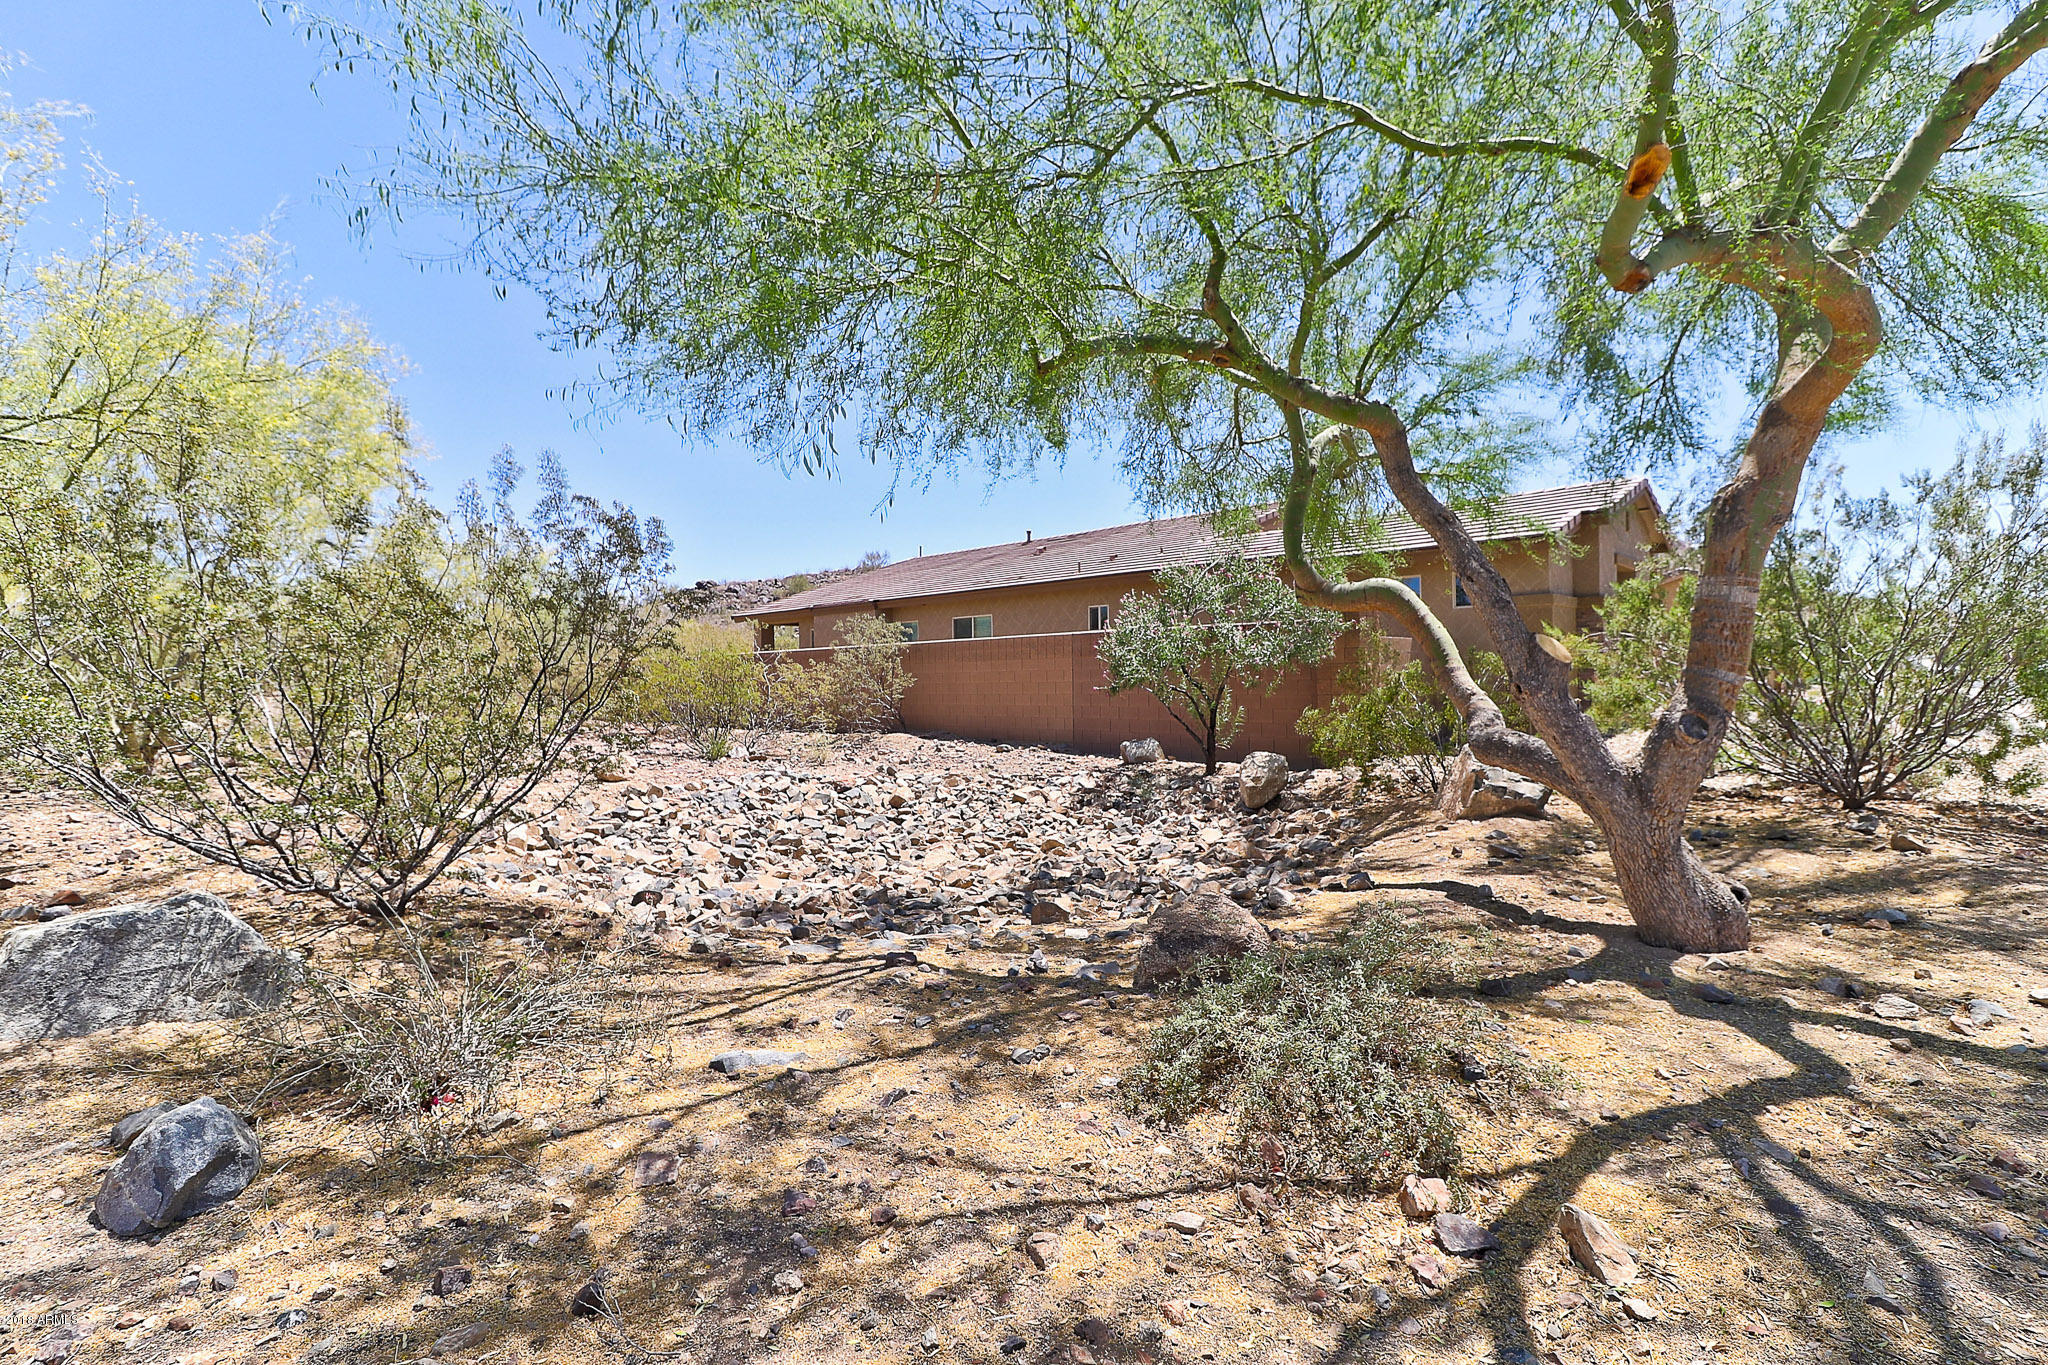 MLS 5764521 29287 N 71ST Drive, Peoria, AZ 85383 Peoria AZ Sonoran Mountain Ranch